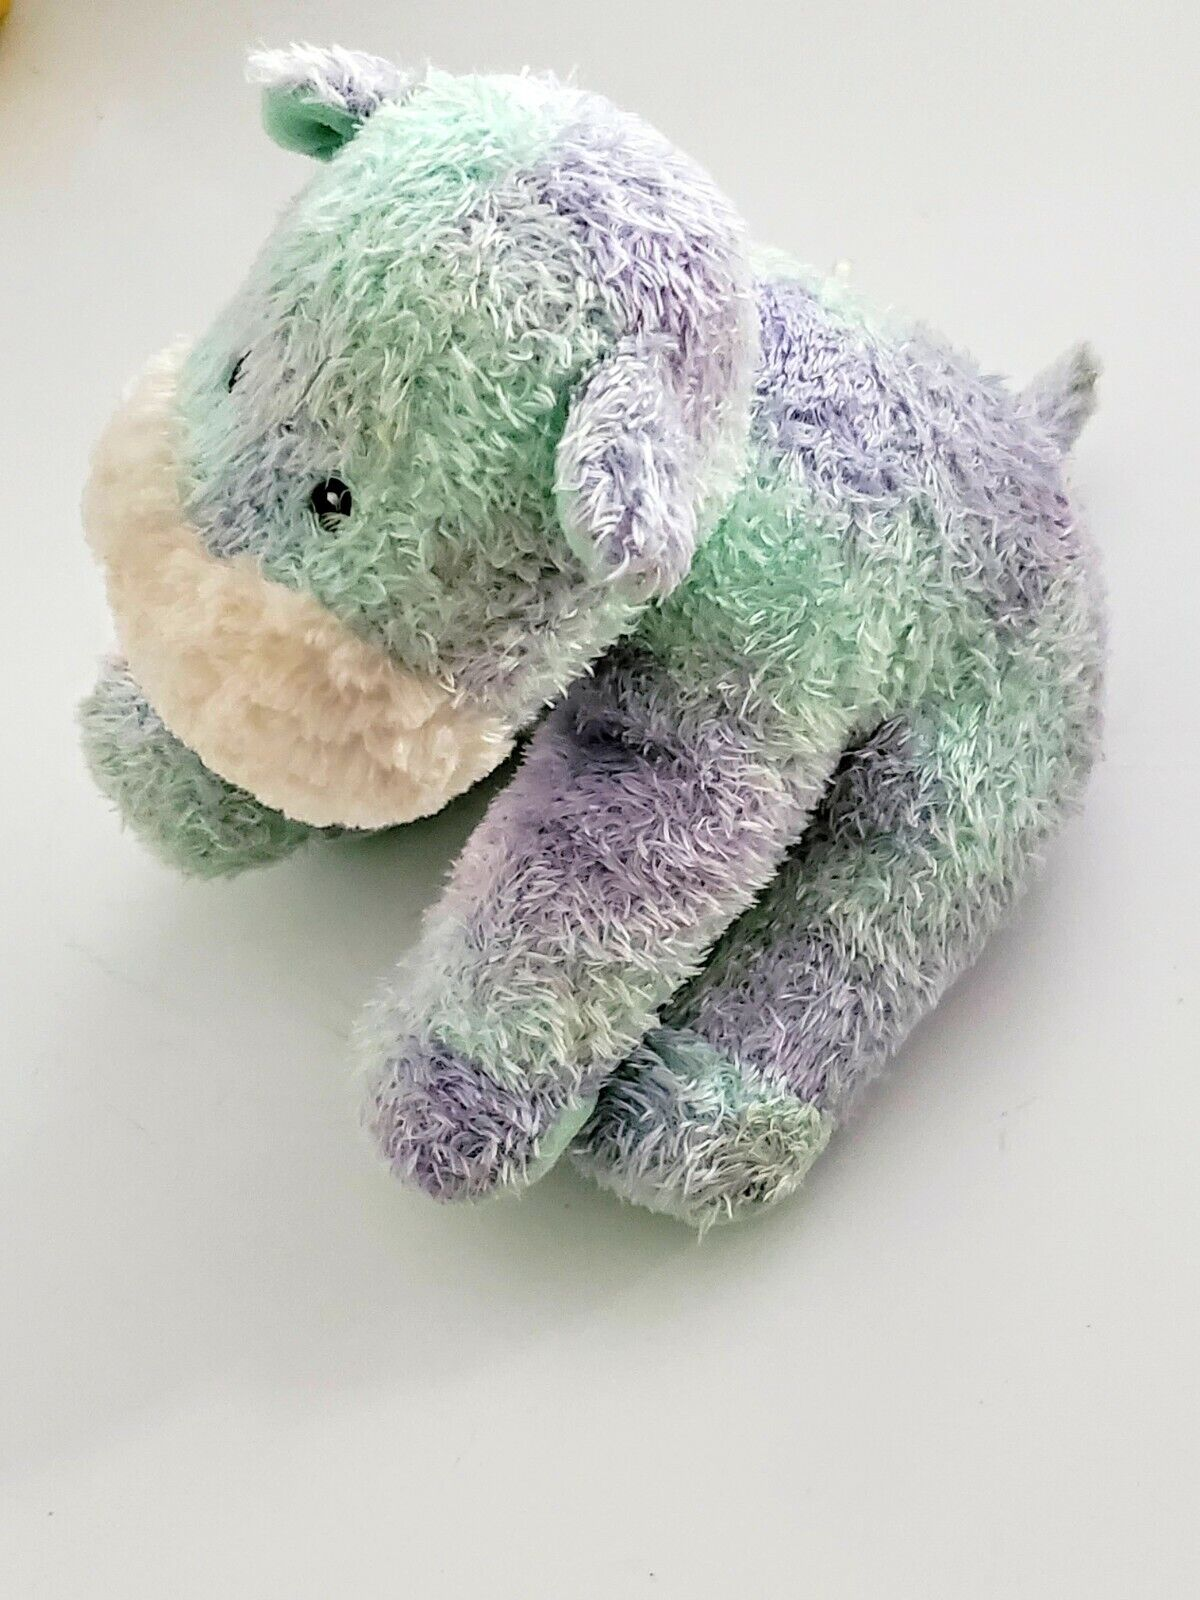 Baby Gund Sprinkles 58083 Horse Pony Cow Musical Wind Up Plush Purple Green - $79.99